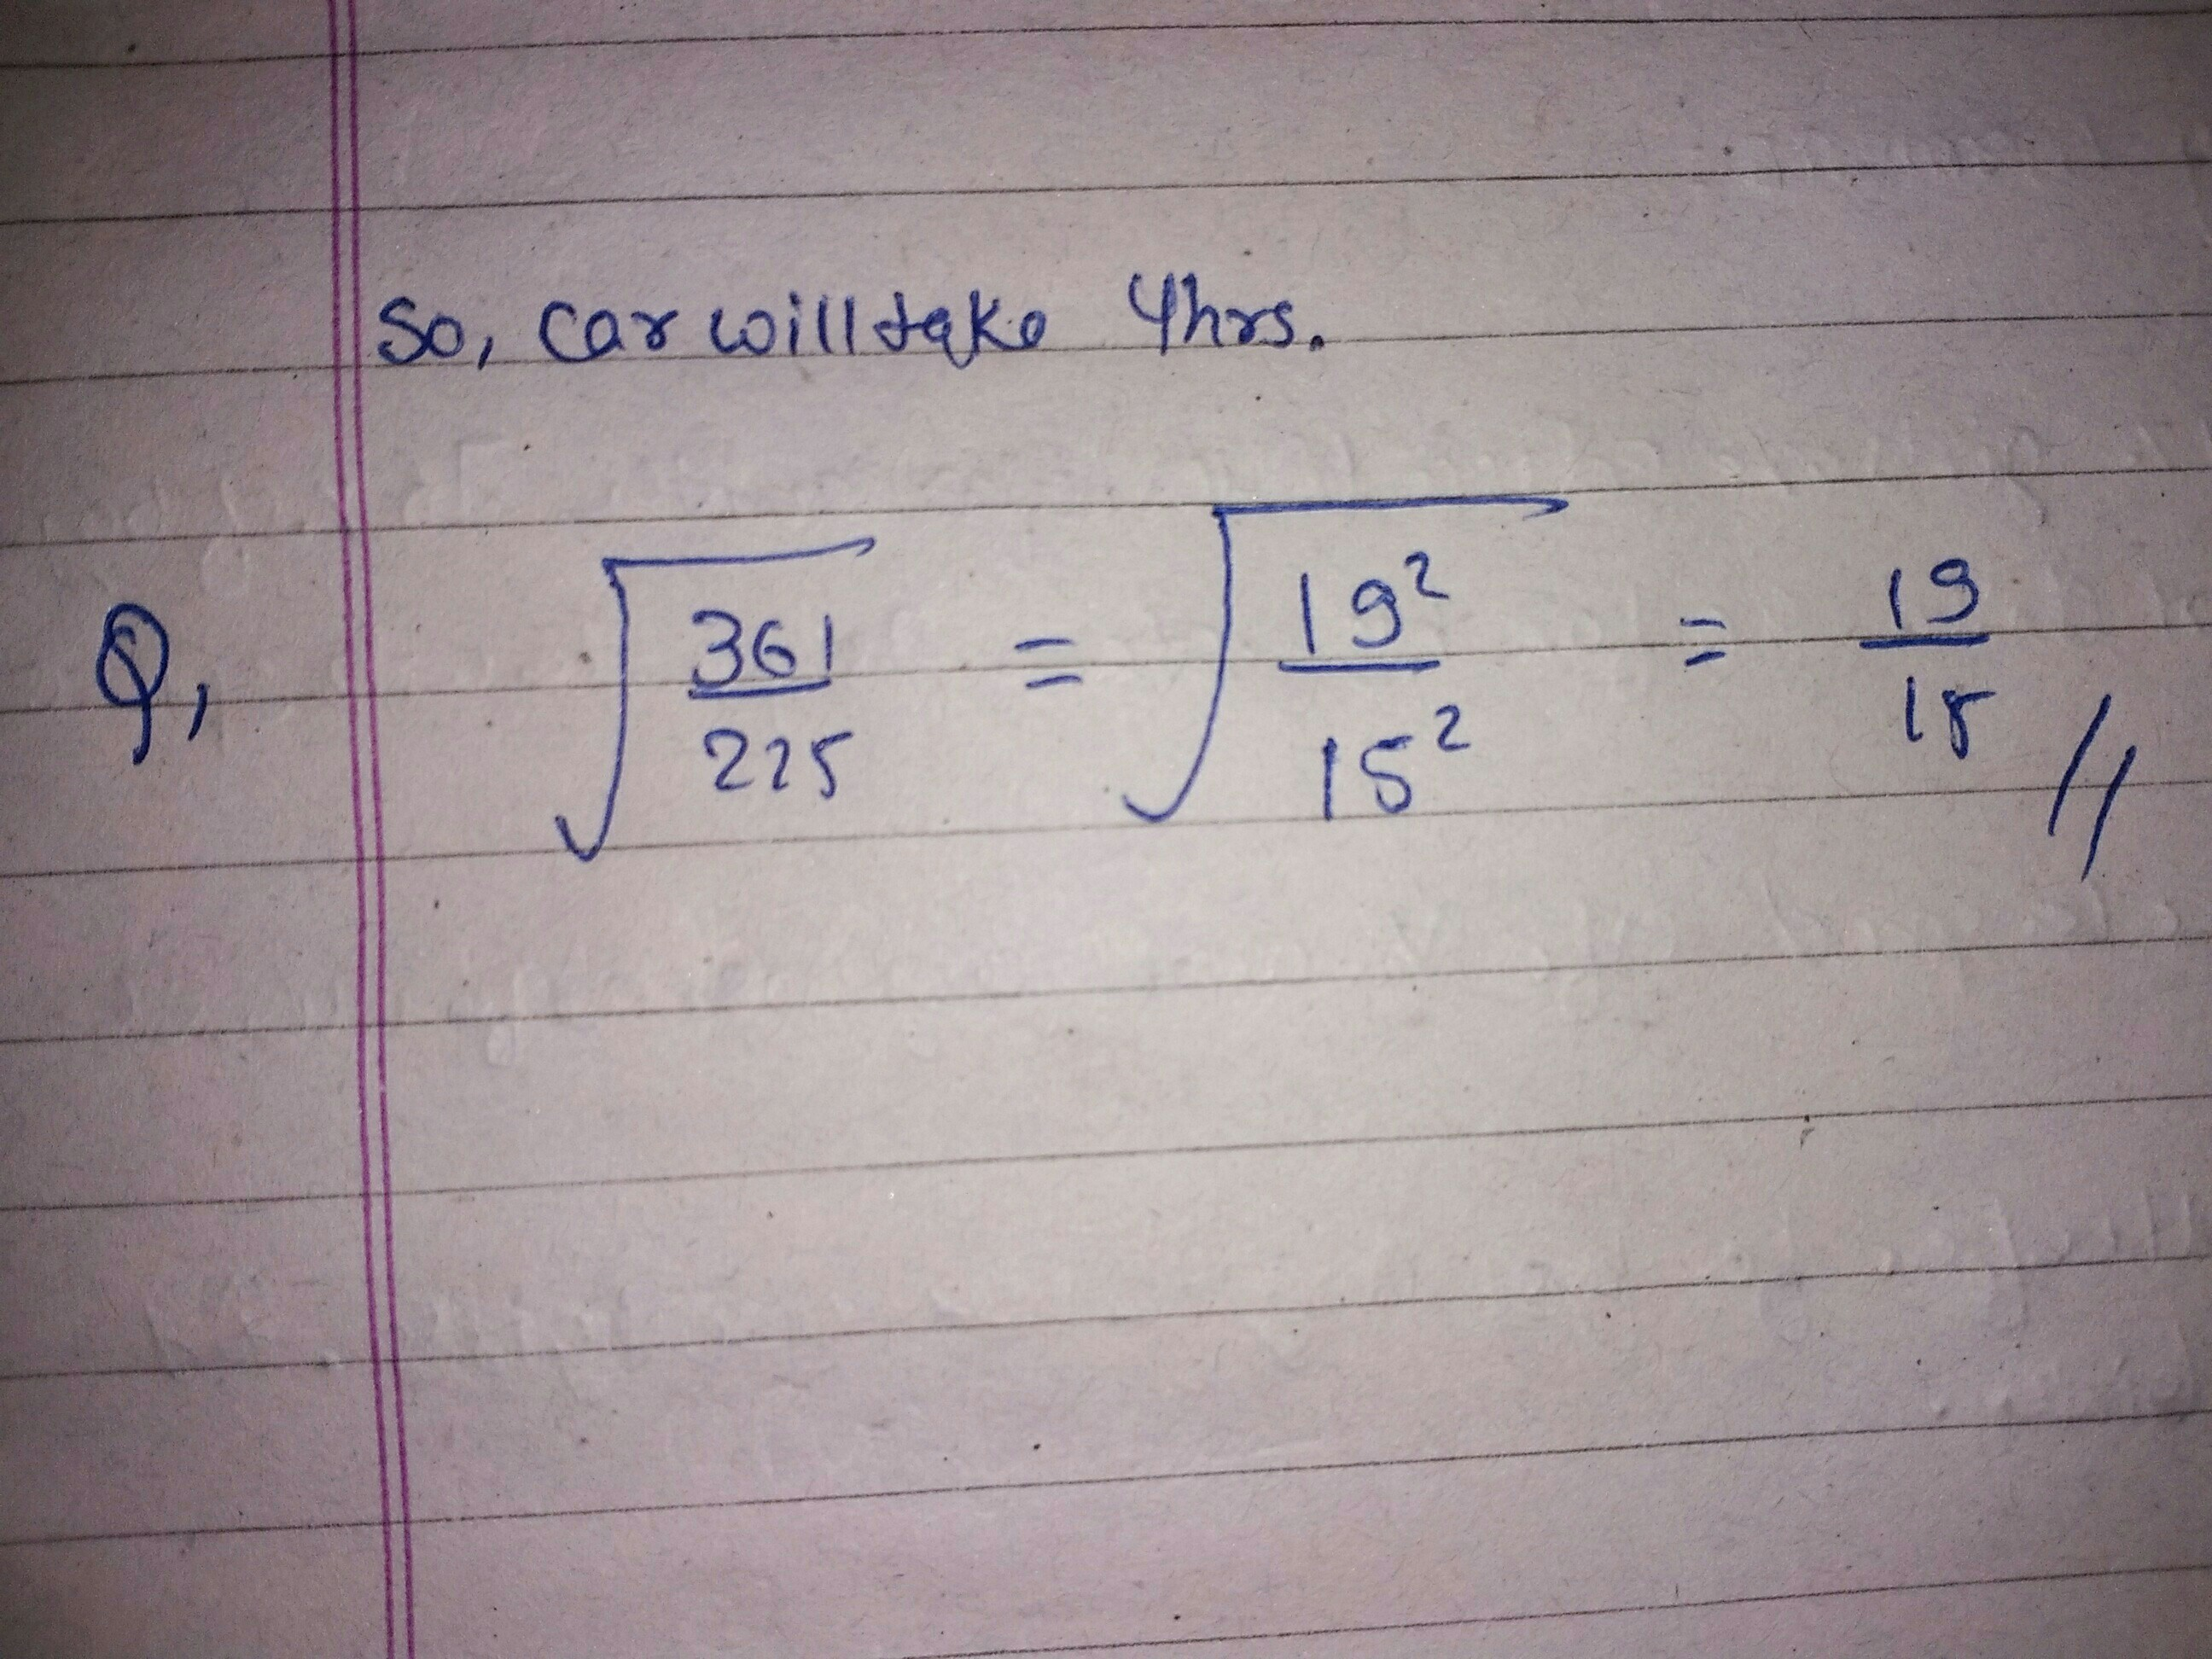 Find The Square Root Of 361 225 Brainly In In other words, a number y whose square (the result of multiplying the number by itself, or y ⋅ y) is x. square root of 361 225 brainly